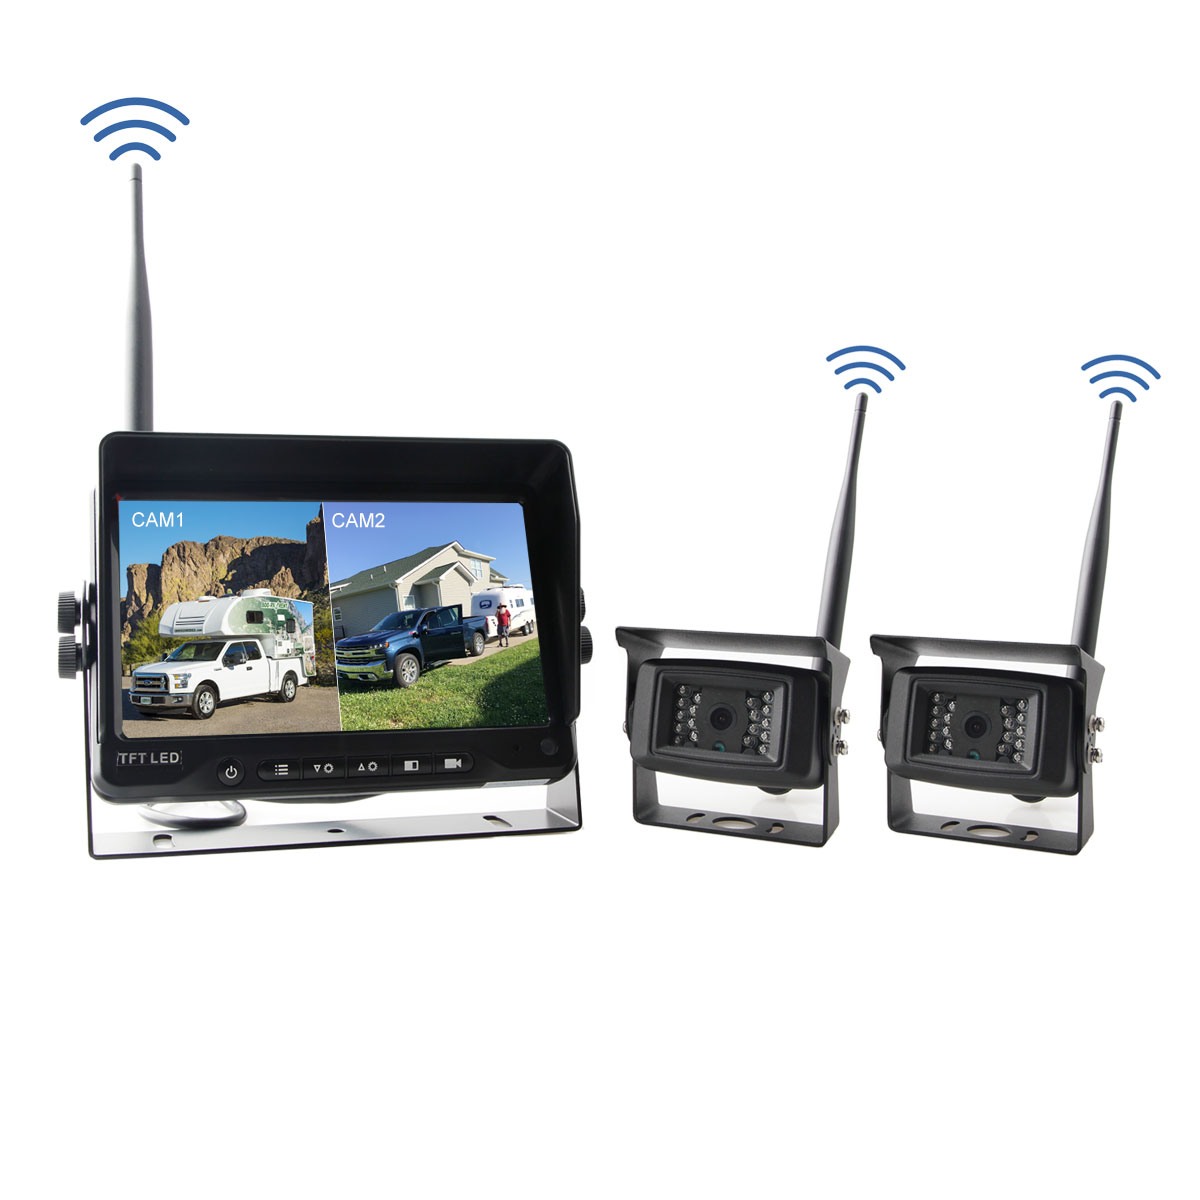 Wireless camera system for RV, Motorhome trailers